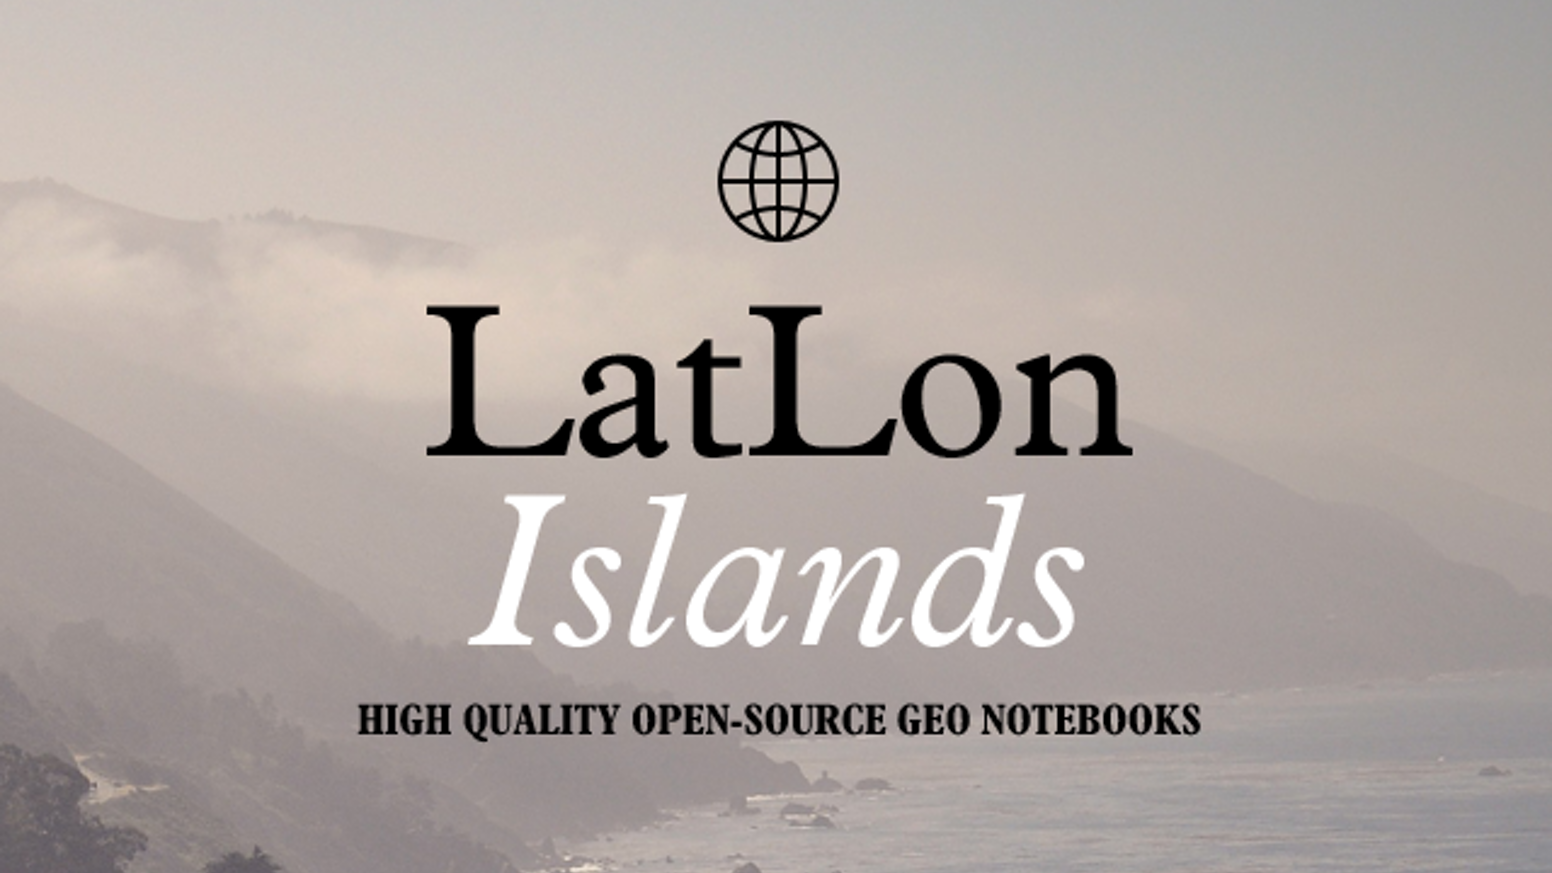 A beautiful series of high quality notebooks based on Islands around the world and built using geographical open data.